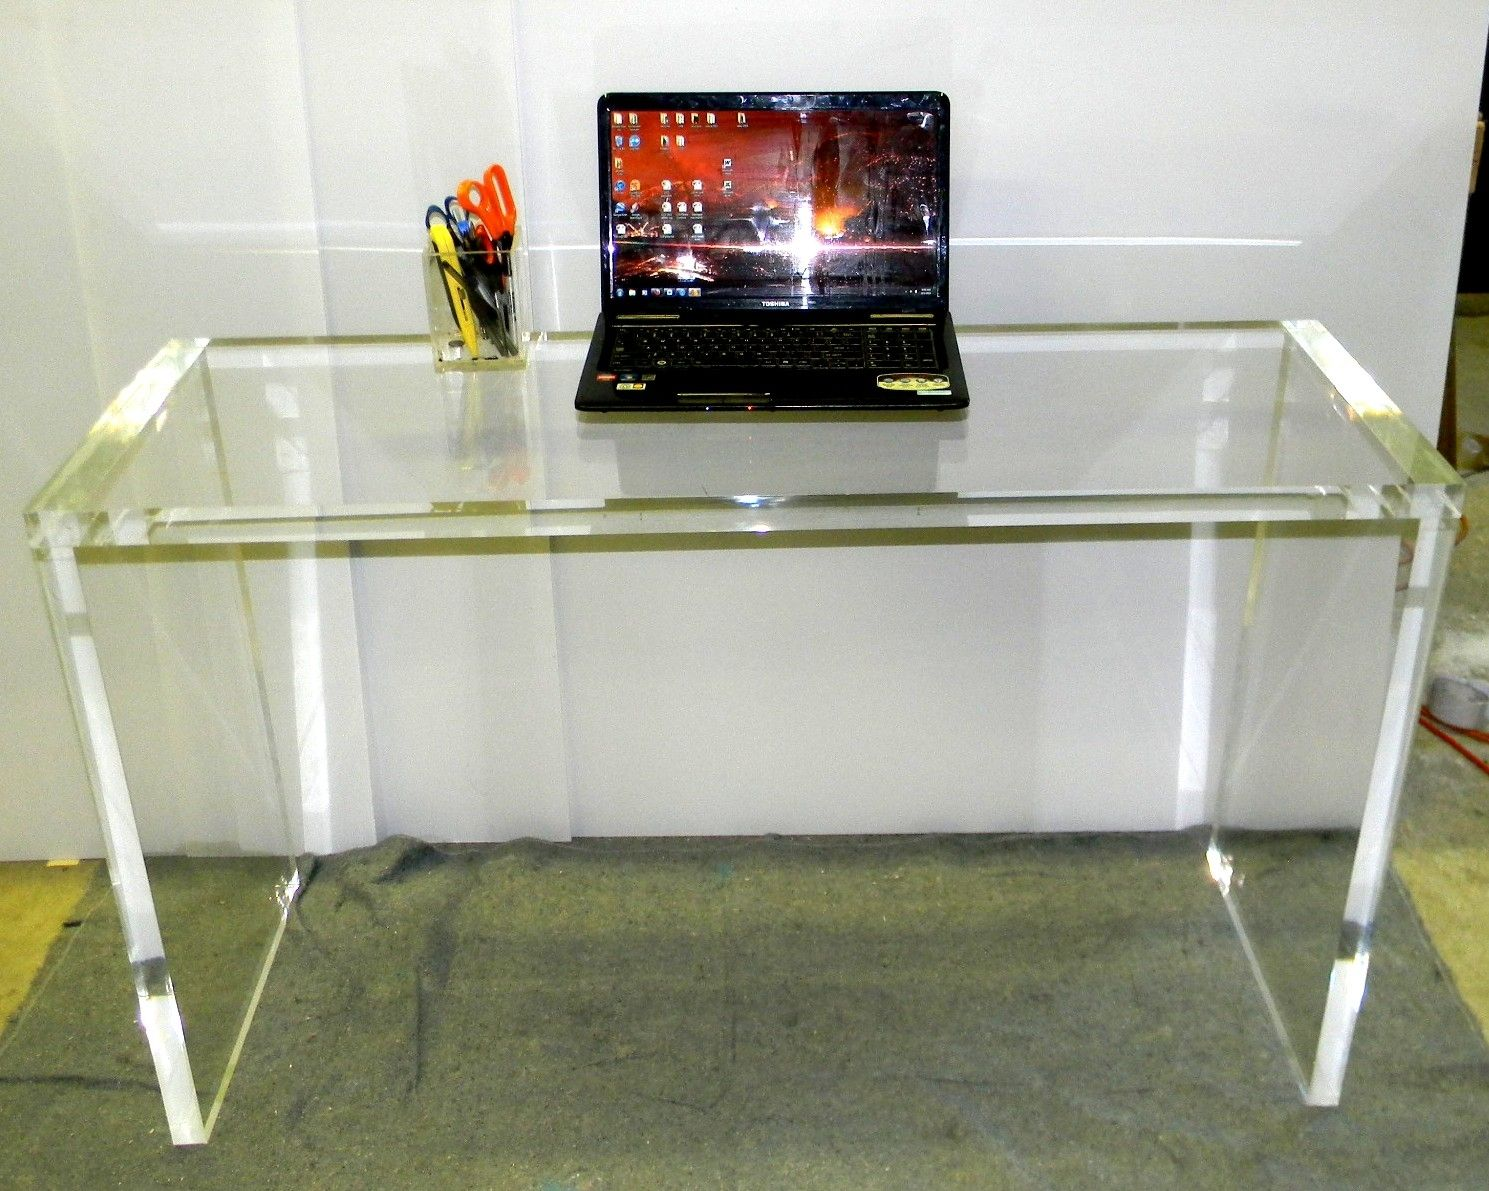 Hand crafted acrylic entryway console table in 15 by custom hand crafted acrylic entryway console table in 15 by custom acrylic lucite creations by matthew james custommade geotapseo Gallery